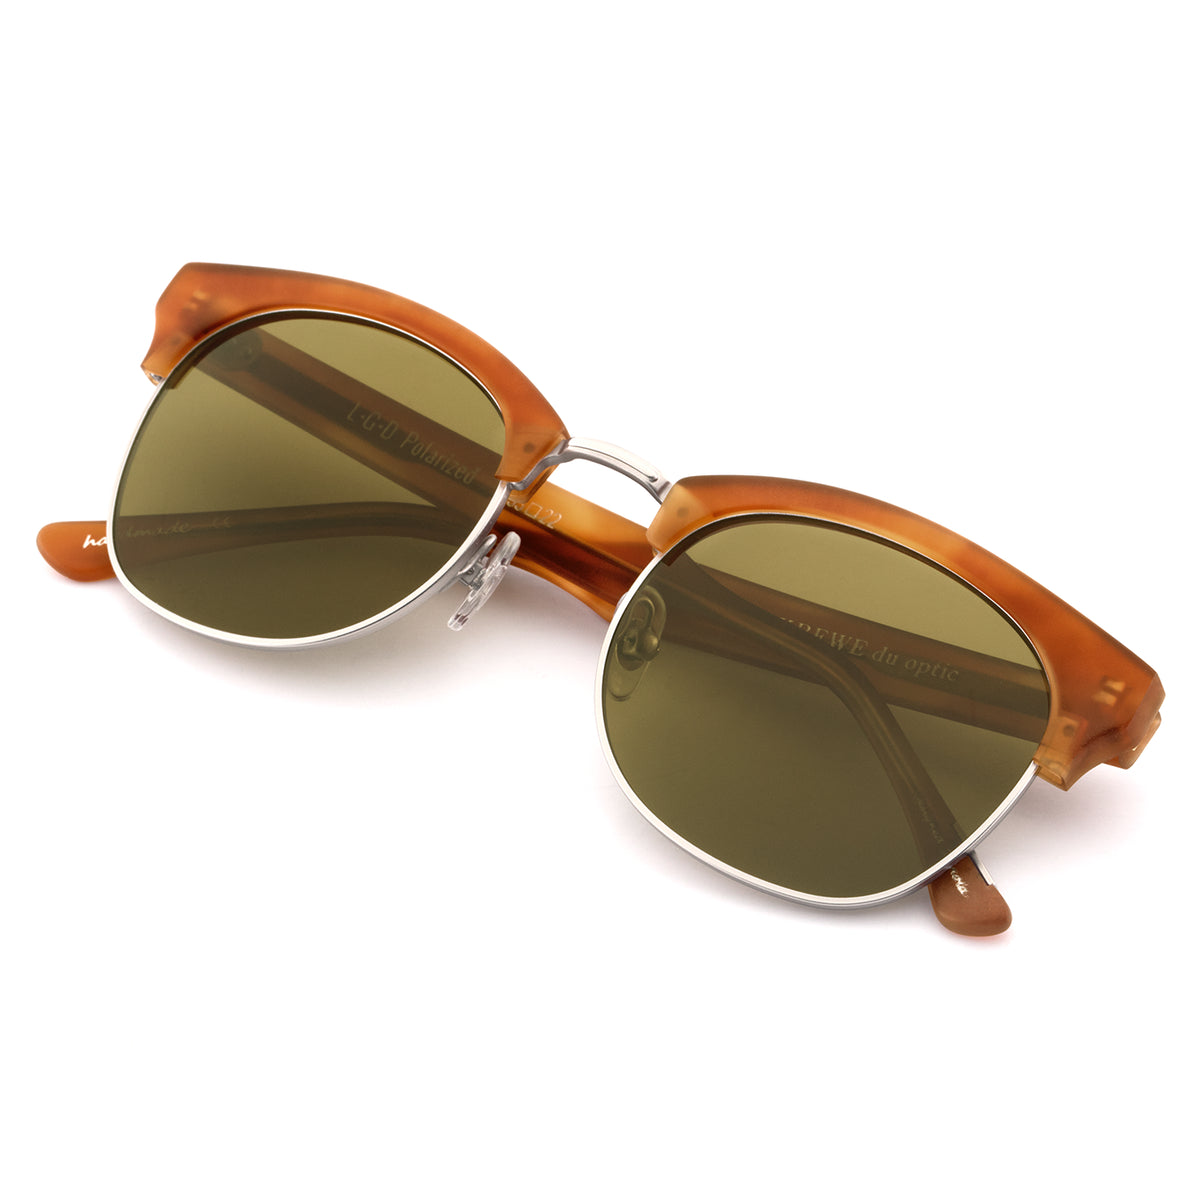 L.G.D. | Matte Tobacco Polarized - Retro clubmaster Sunglasses hand carved from acetate.